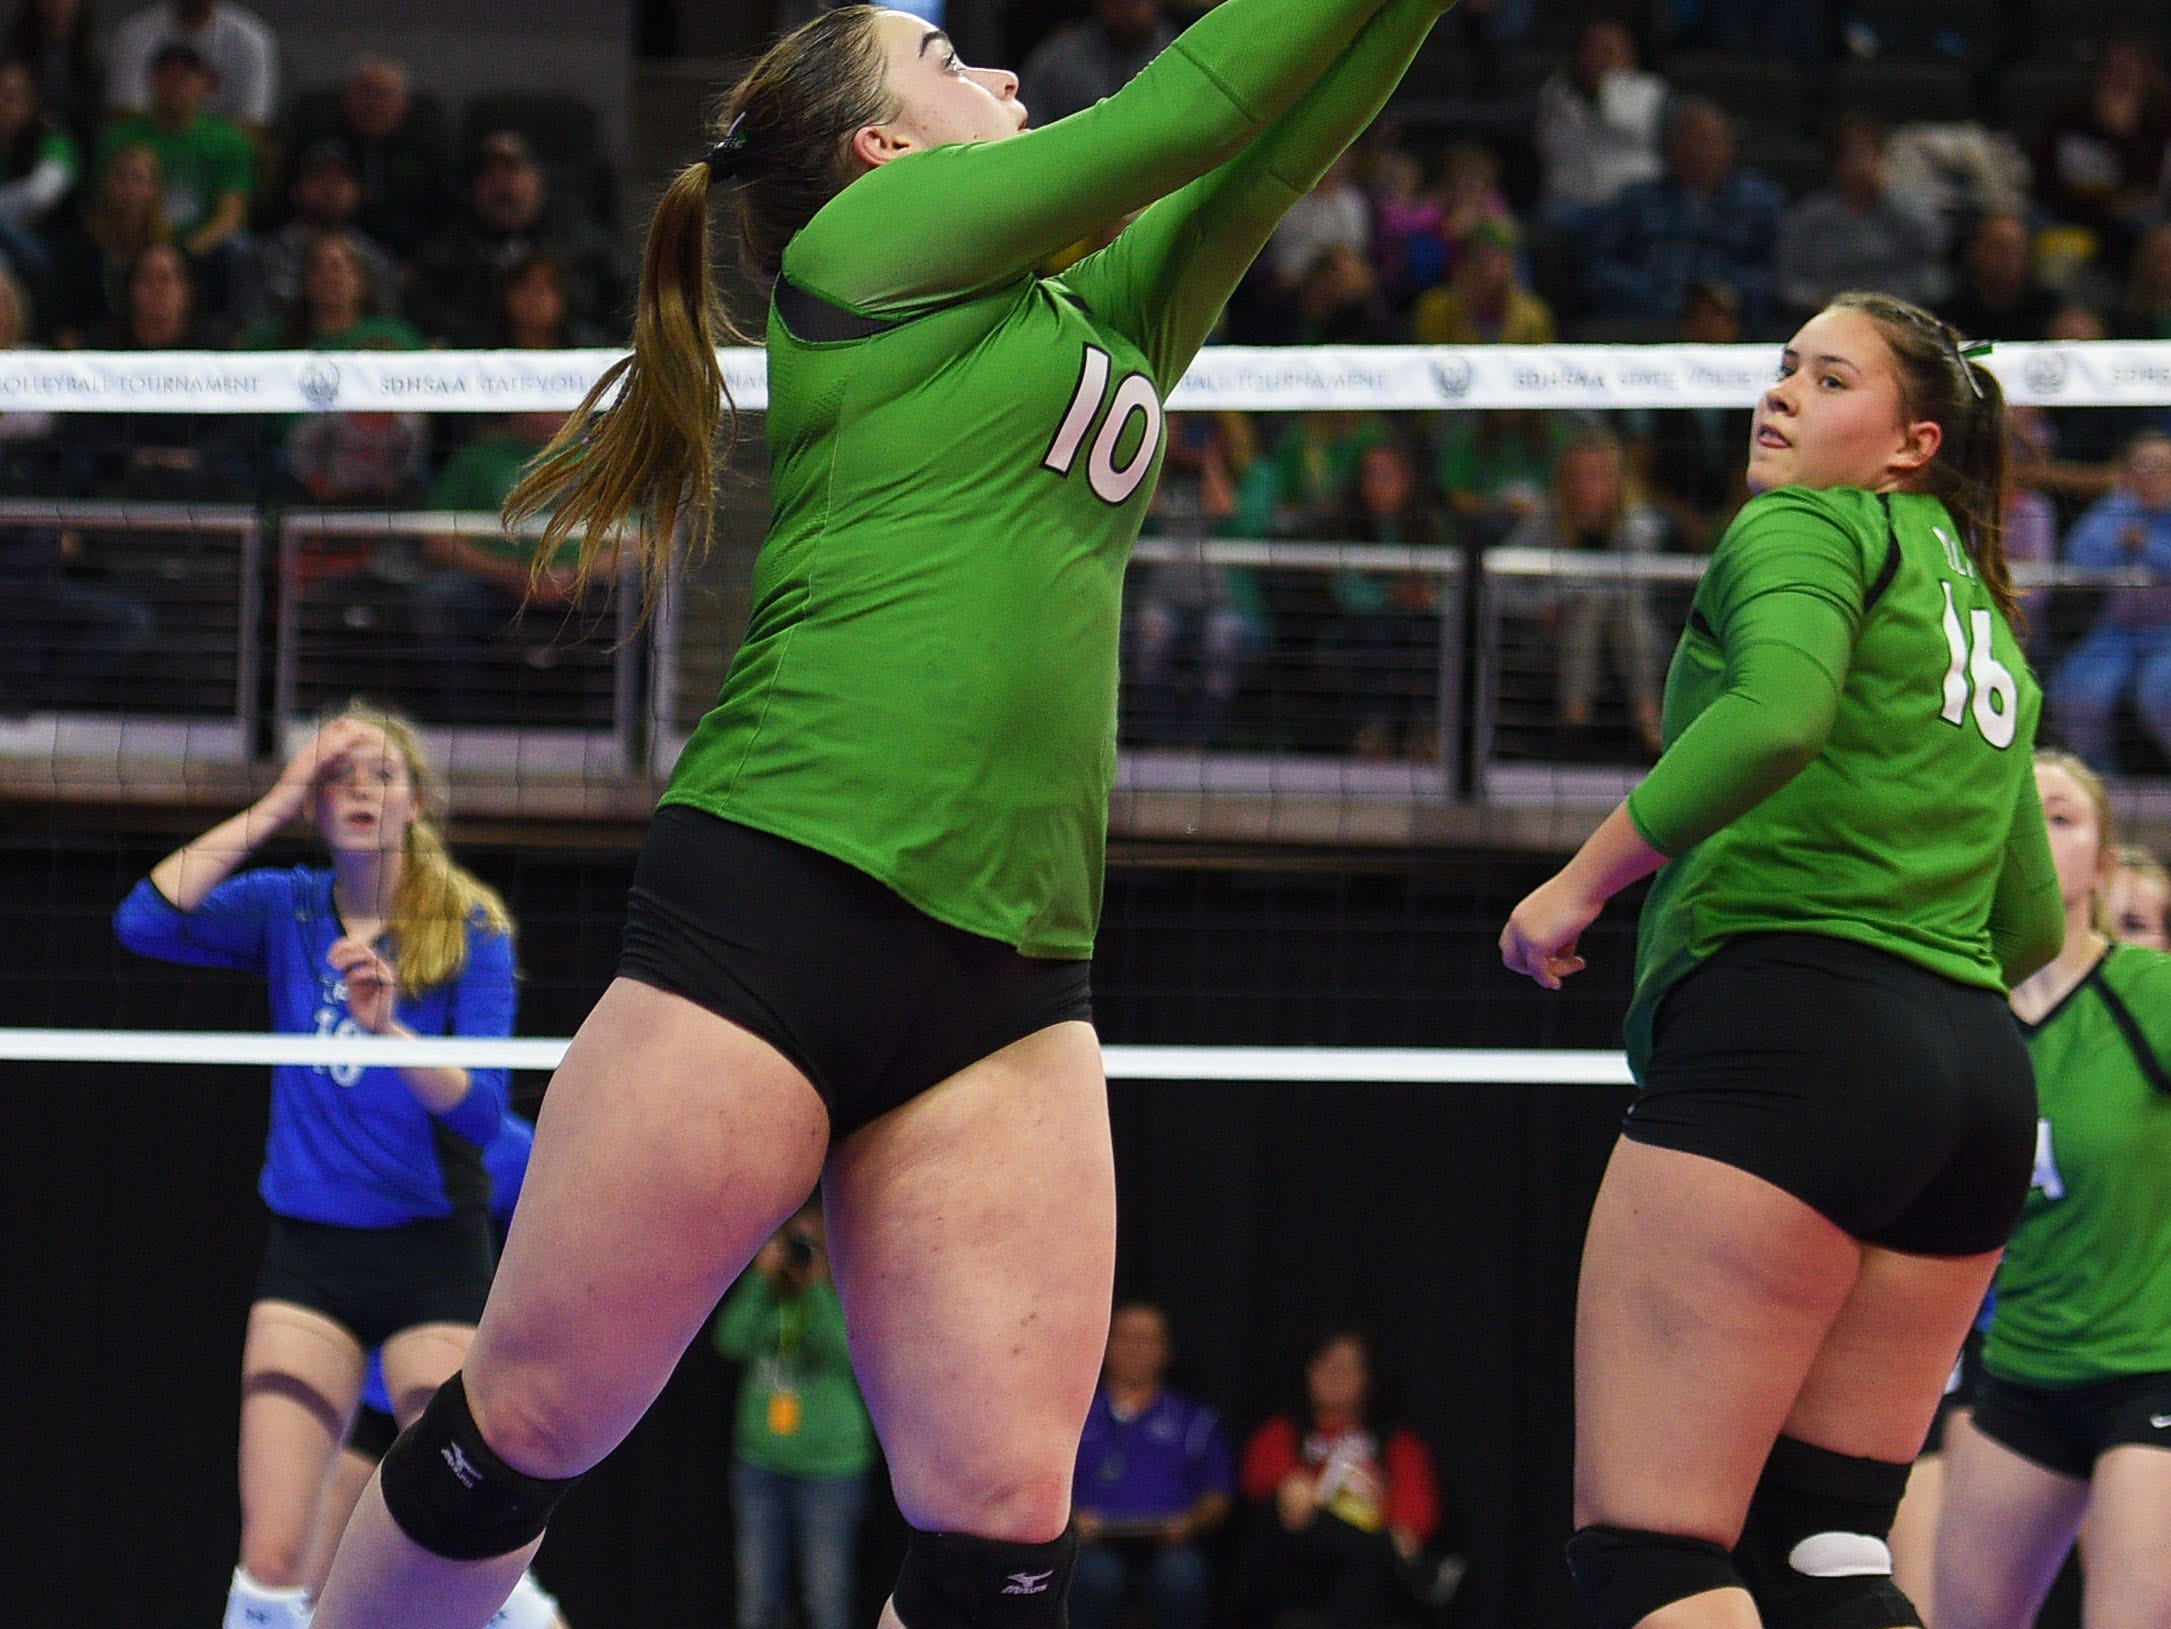 Miller's Madison Wetz during the game against Elk Point-Jefferson during the semifinals Friday, Nov. 16, at the Denny Sanford Premier Center in Sioux Falls.